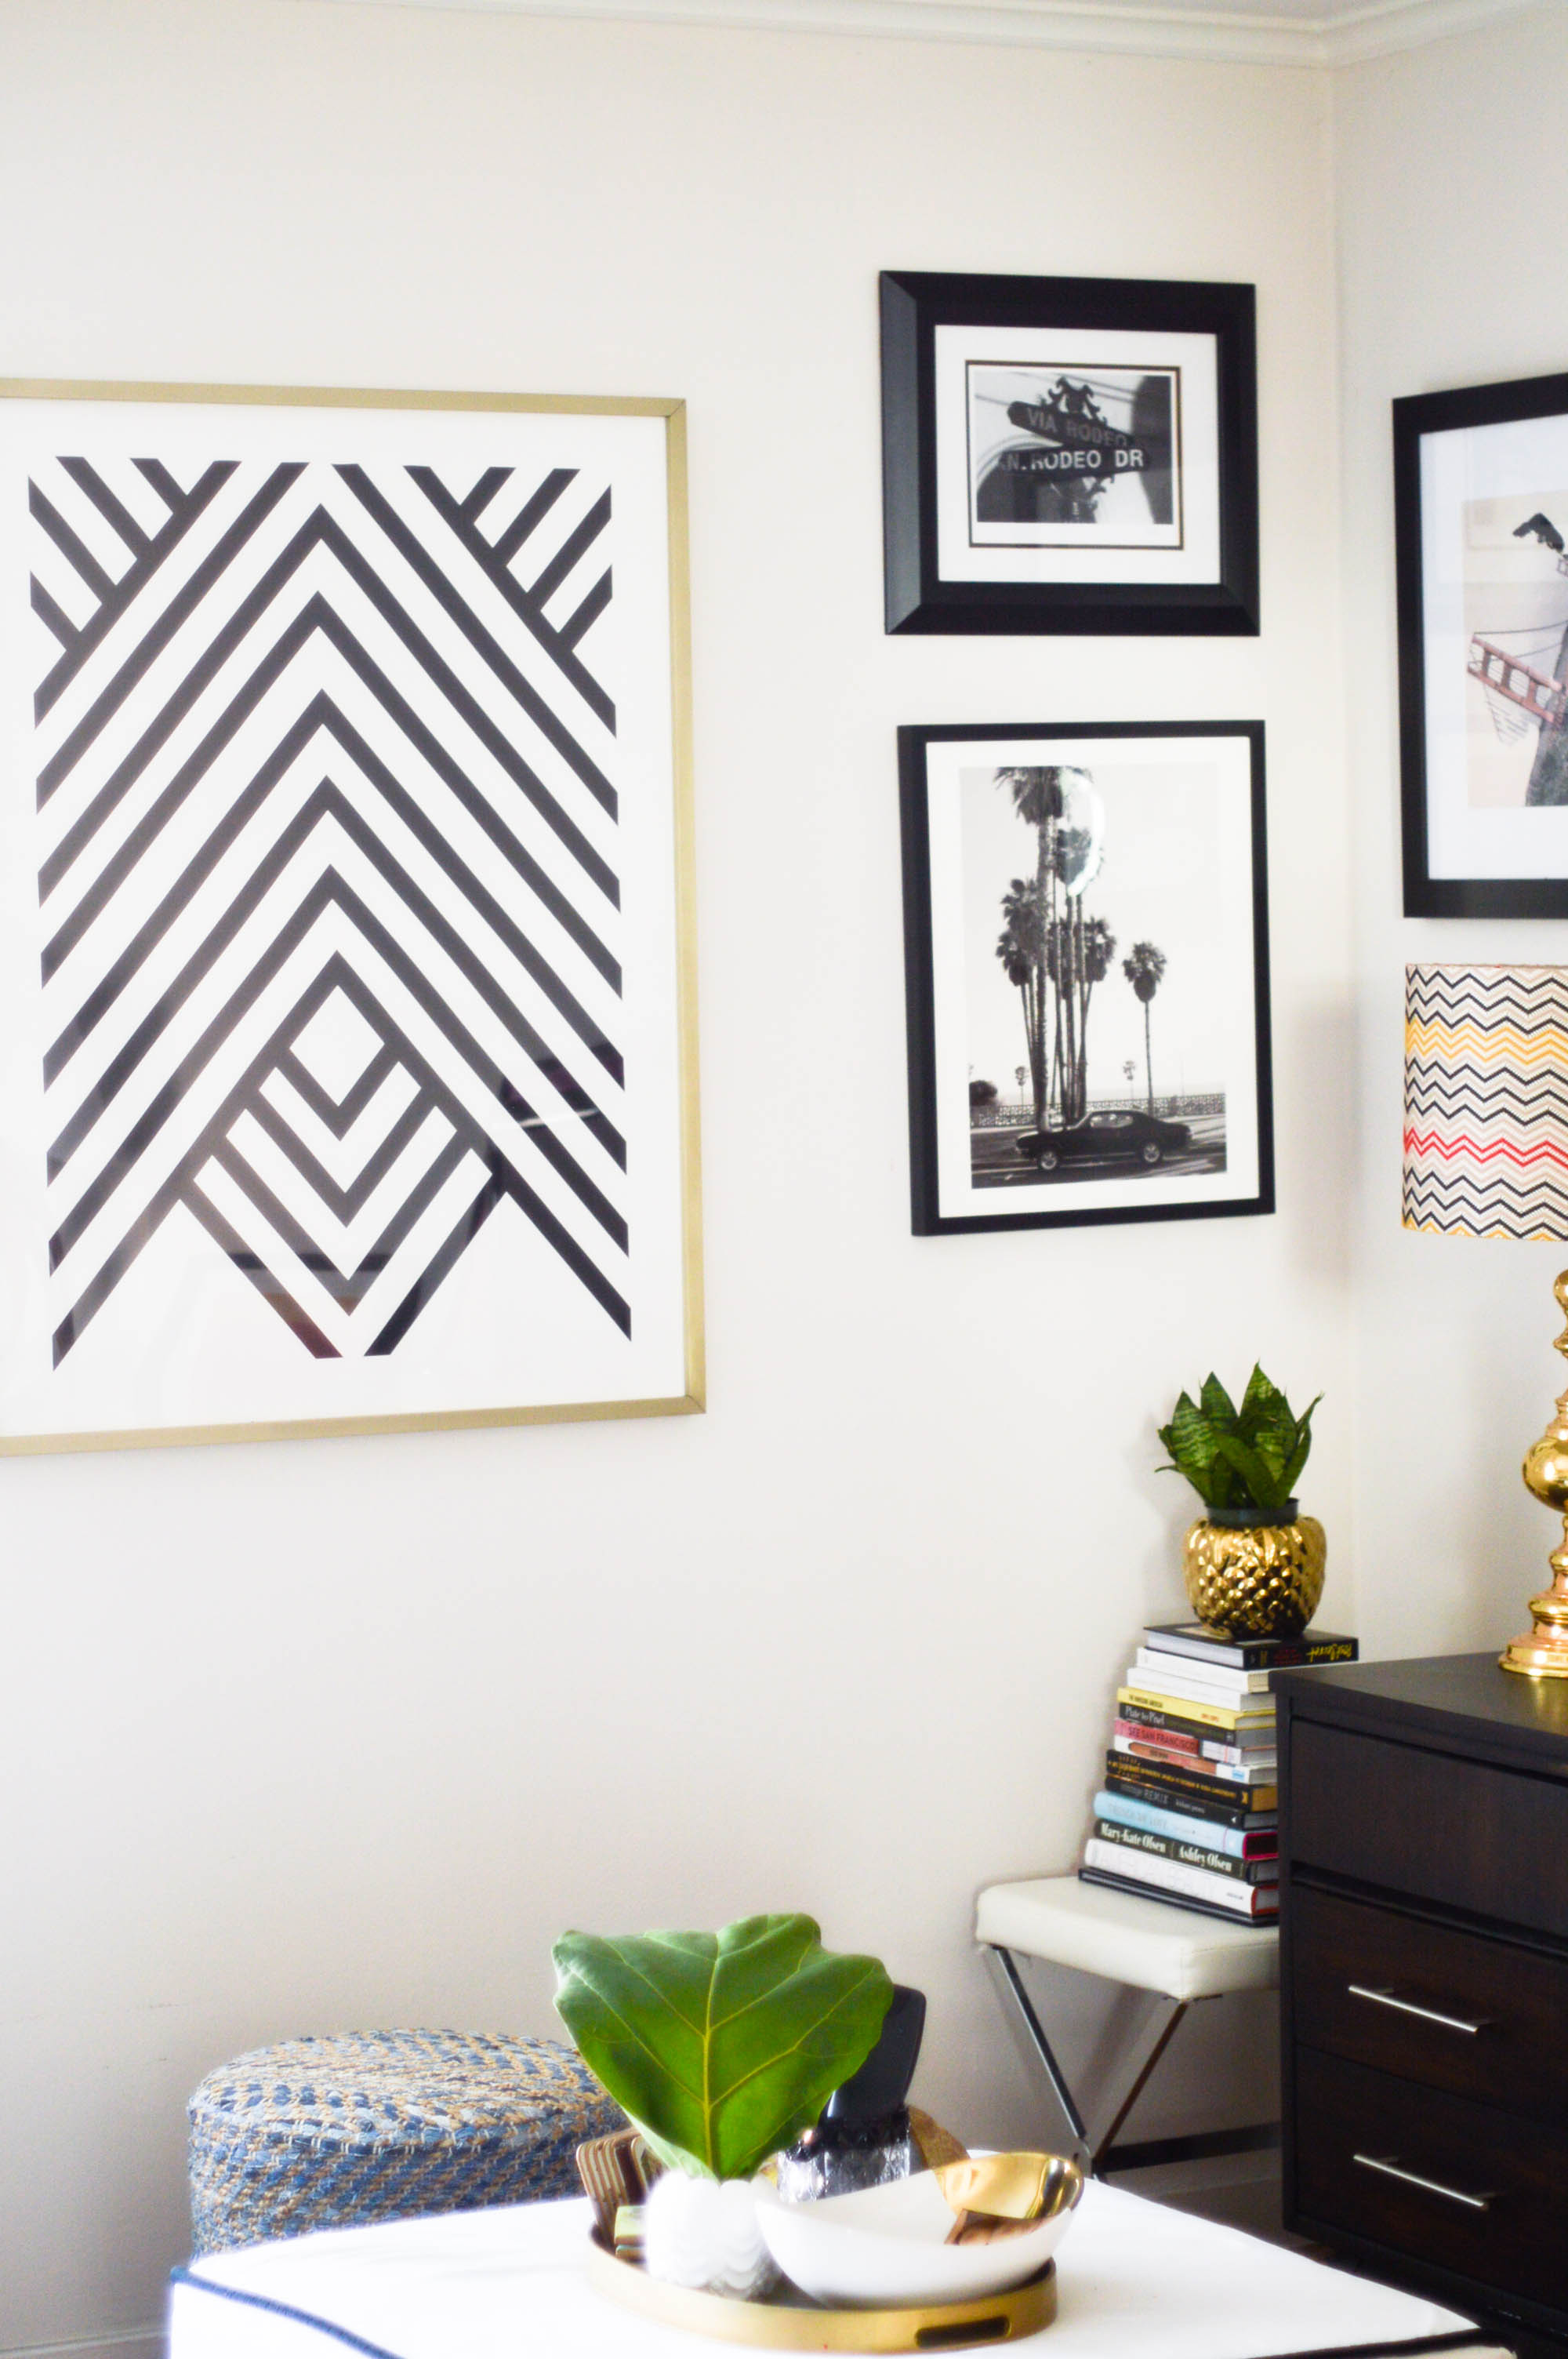 Rental Life, Decorating with Minted Art